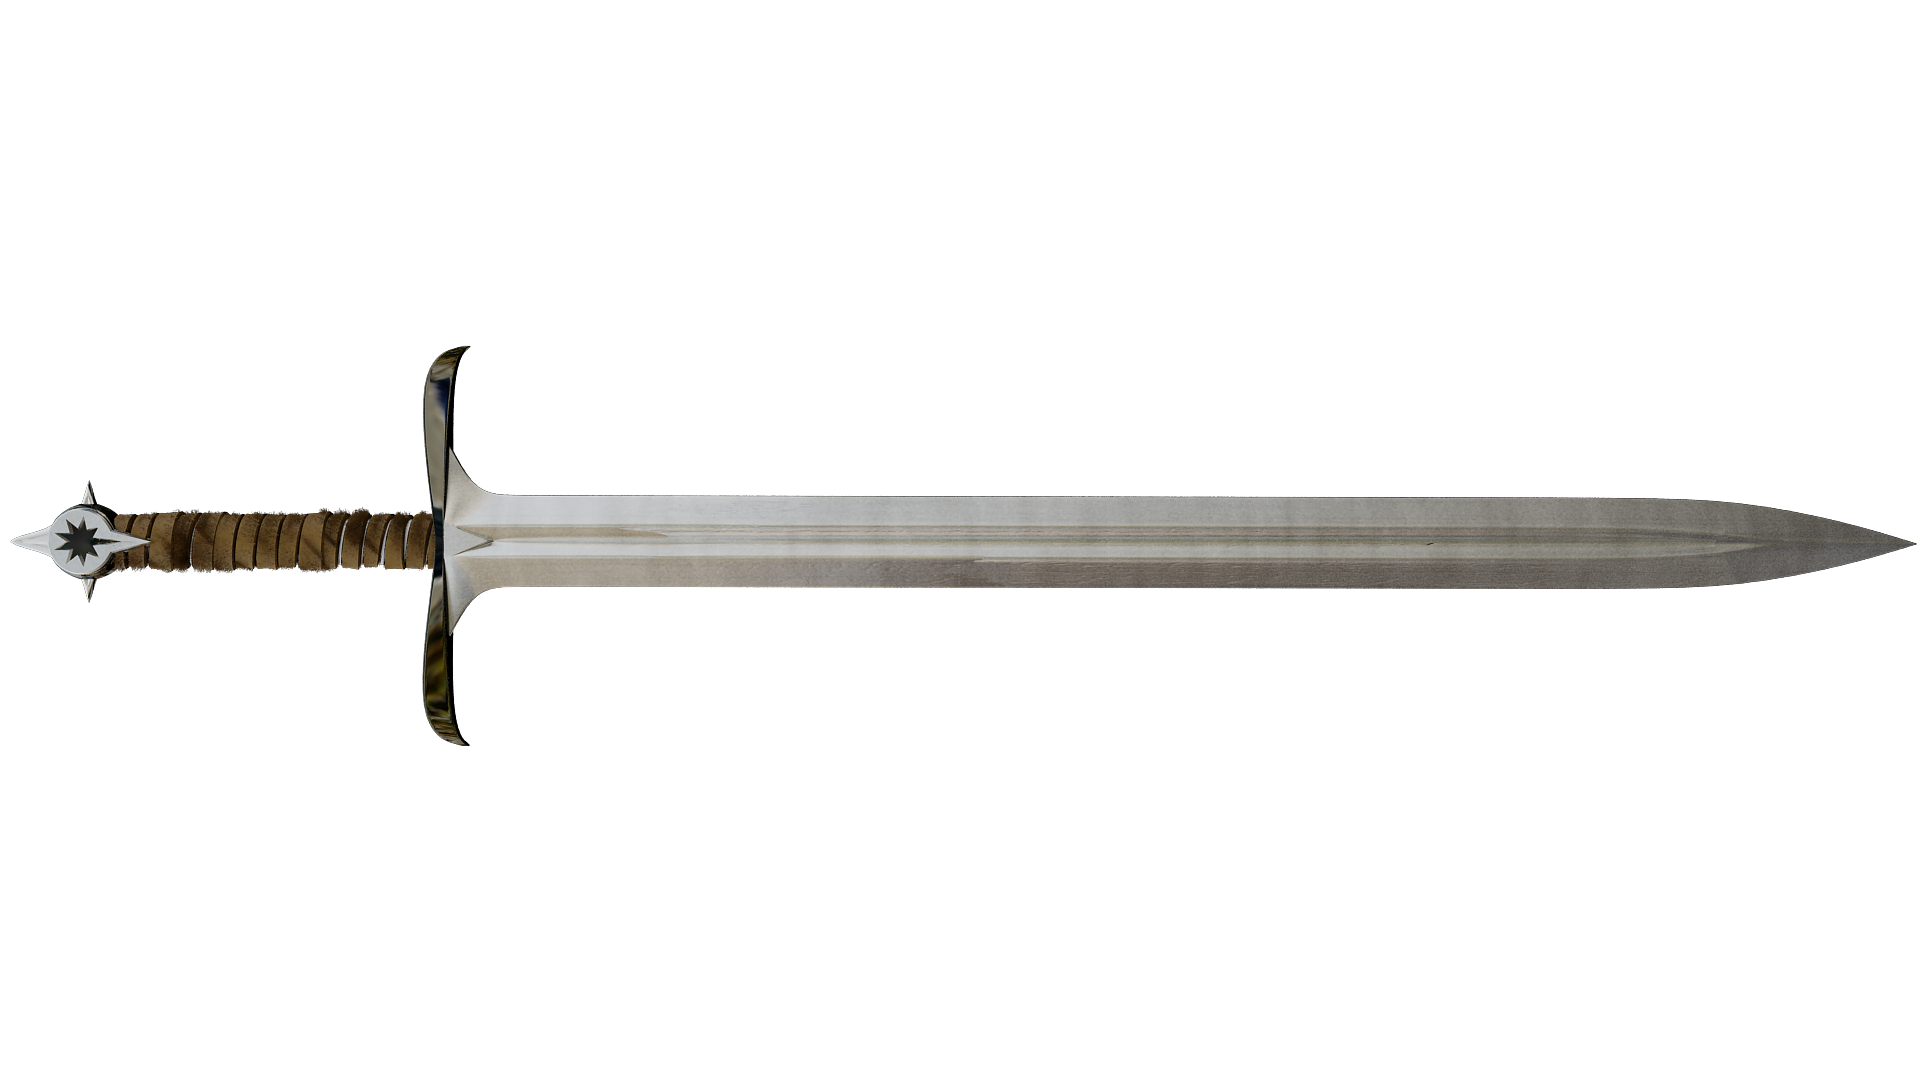 MaJ des bons points Sword-hd-png-sword-png-image-1920